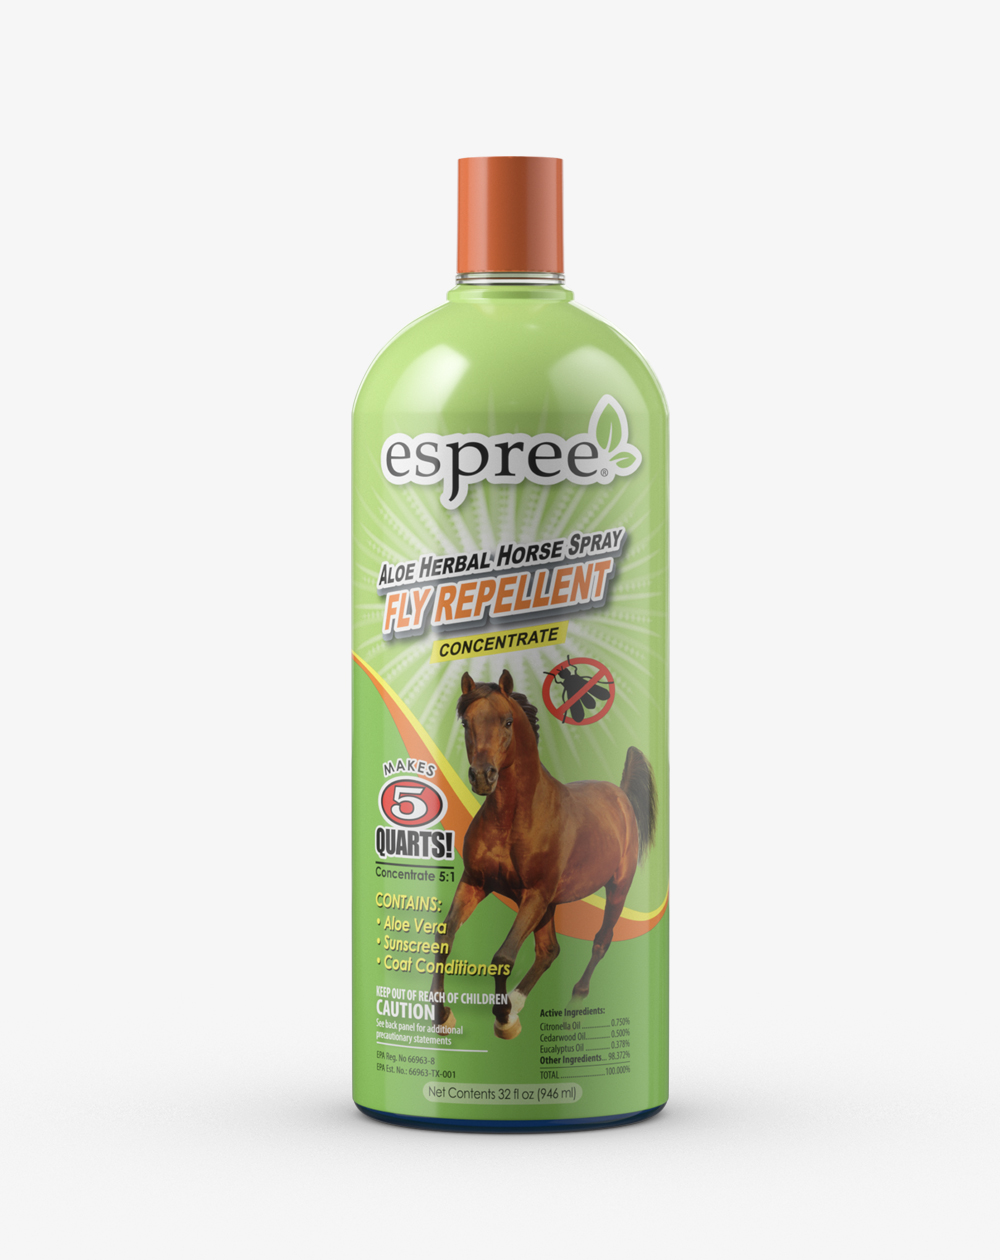 Espree Aloe Herbal Horse Spray Concentrate